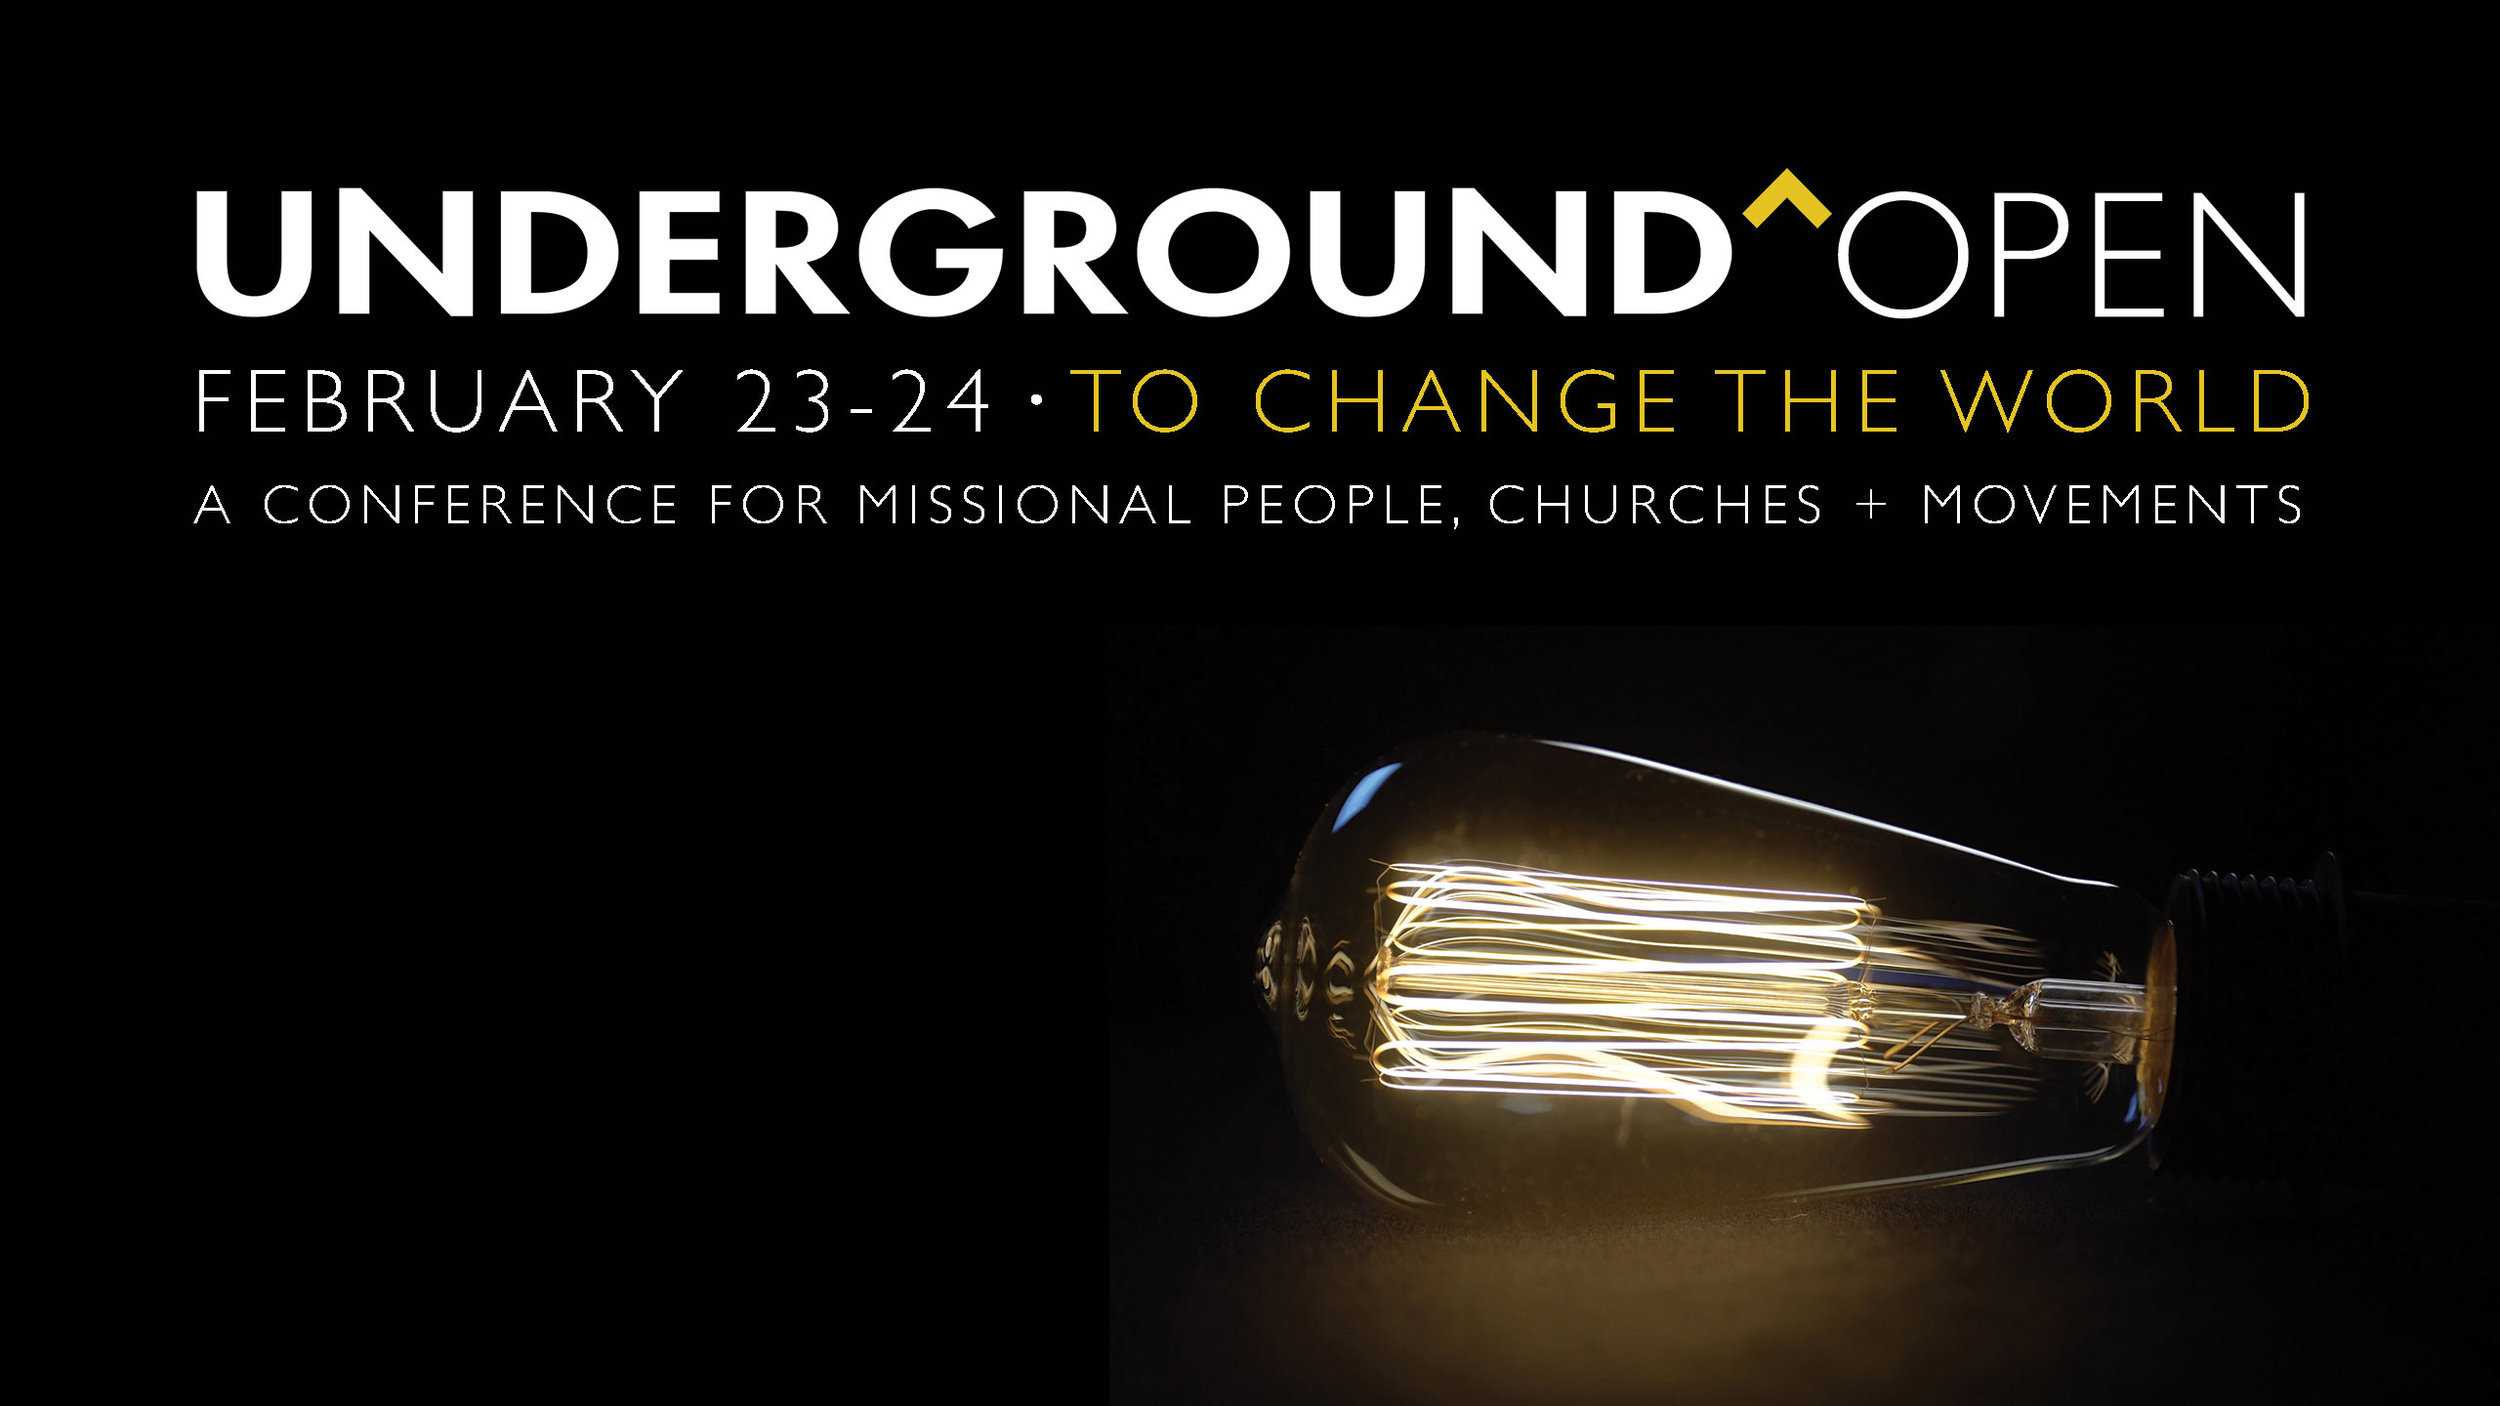 Underground Open   February 22-24, 2018  This global conference gathers sister movements from around the world to focus on what's core to seeing church movement happen. We love to host guests during this time.